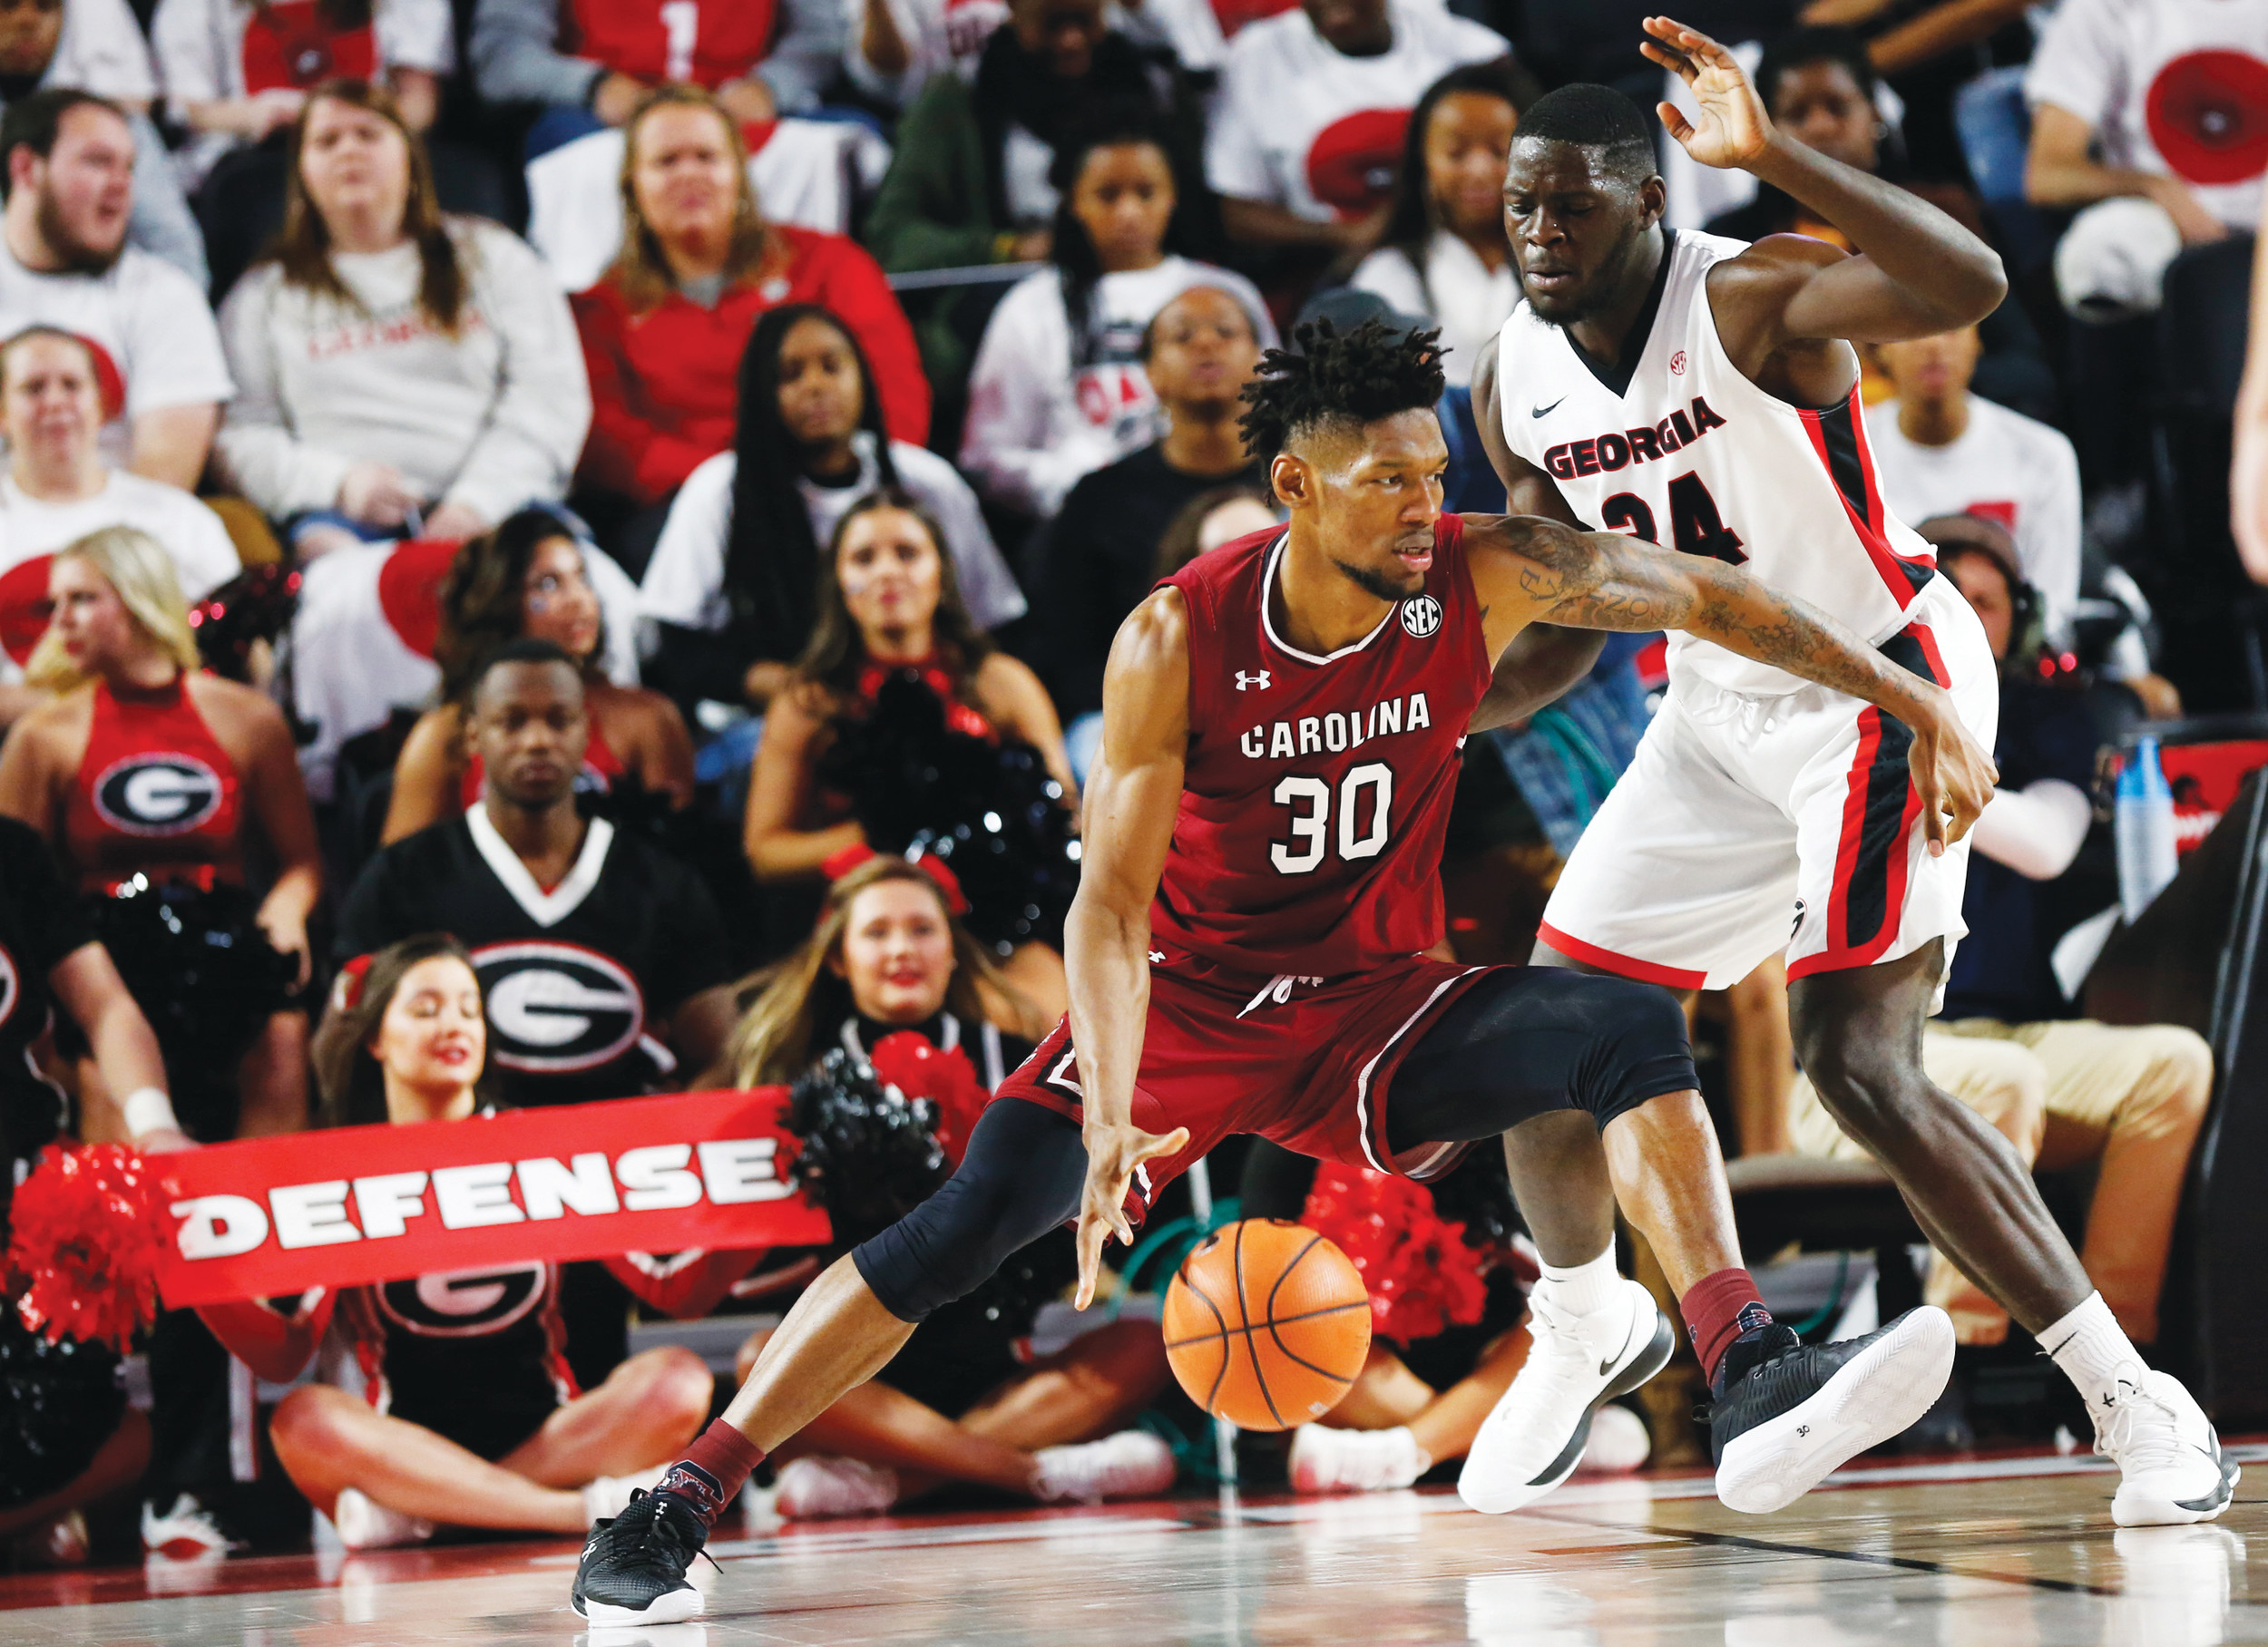 South Carolina forward Chris Silva (30) drives against Georgia forward Derek Ogbeide (34) in the first half of the Gamecocks' victory over the Bulldogs on Friday in Athens, Georgia.